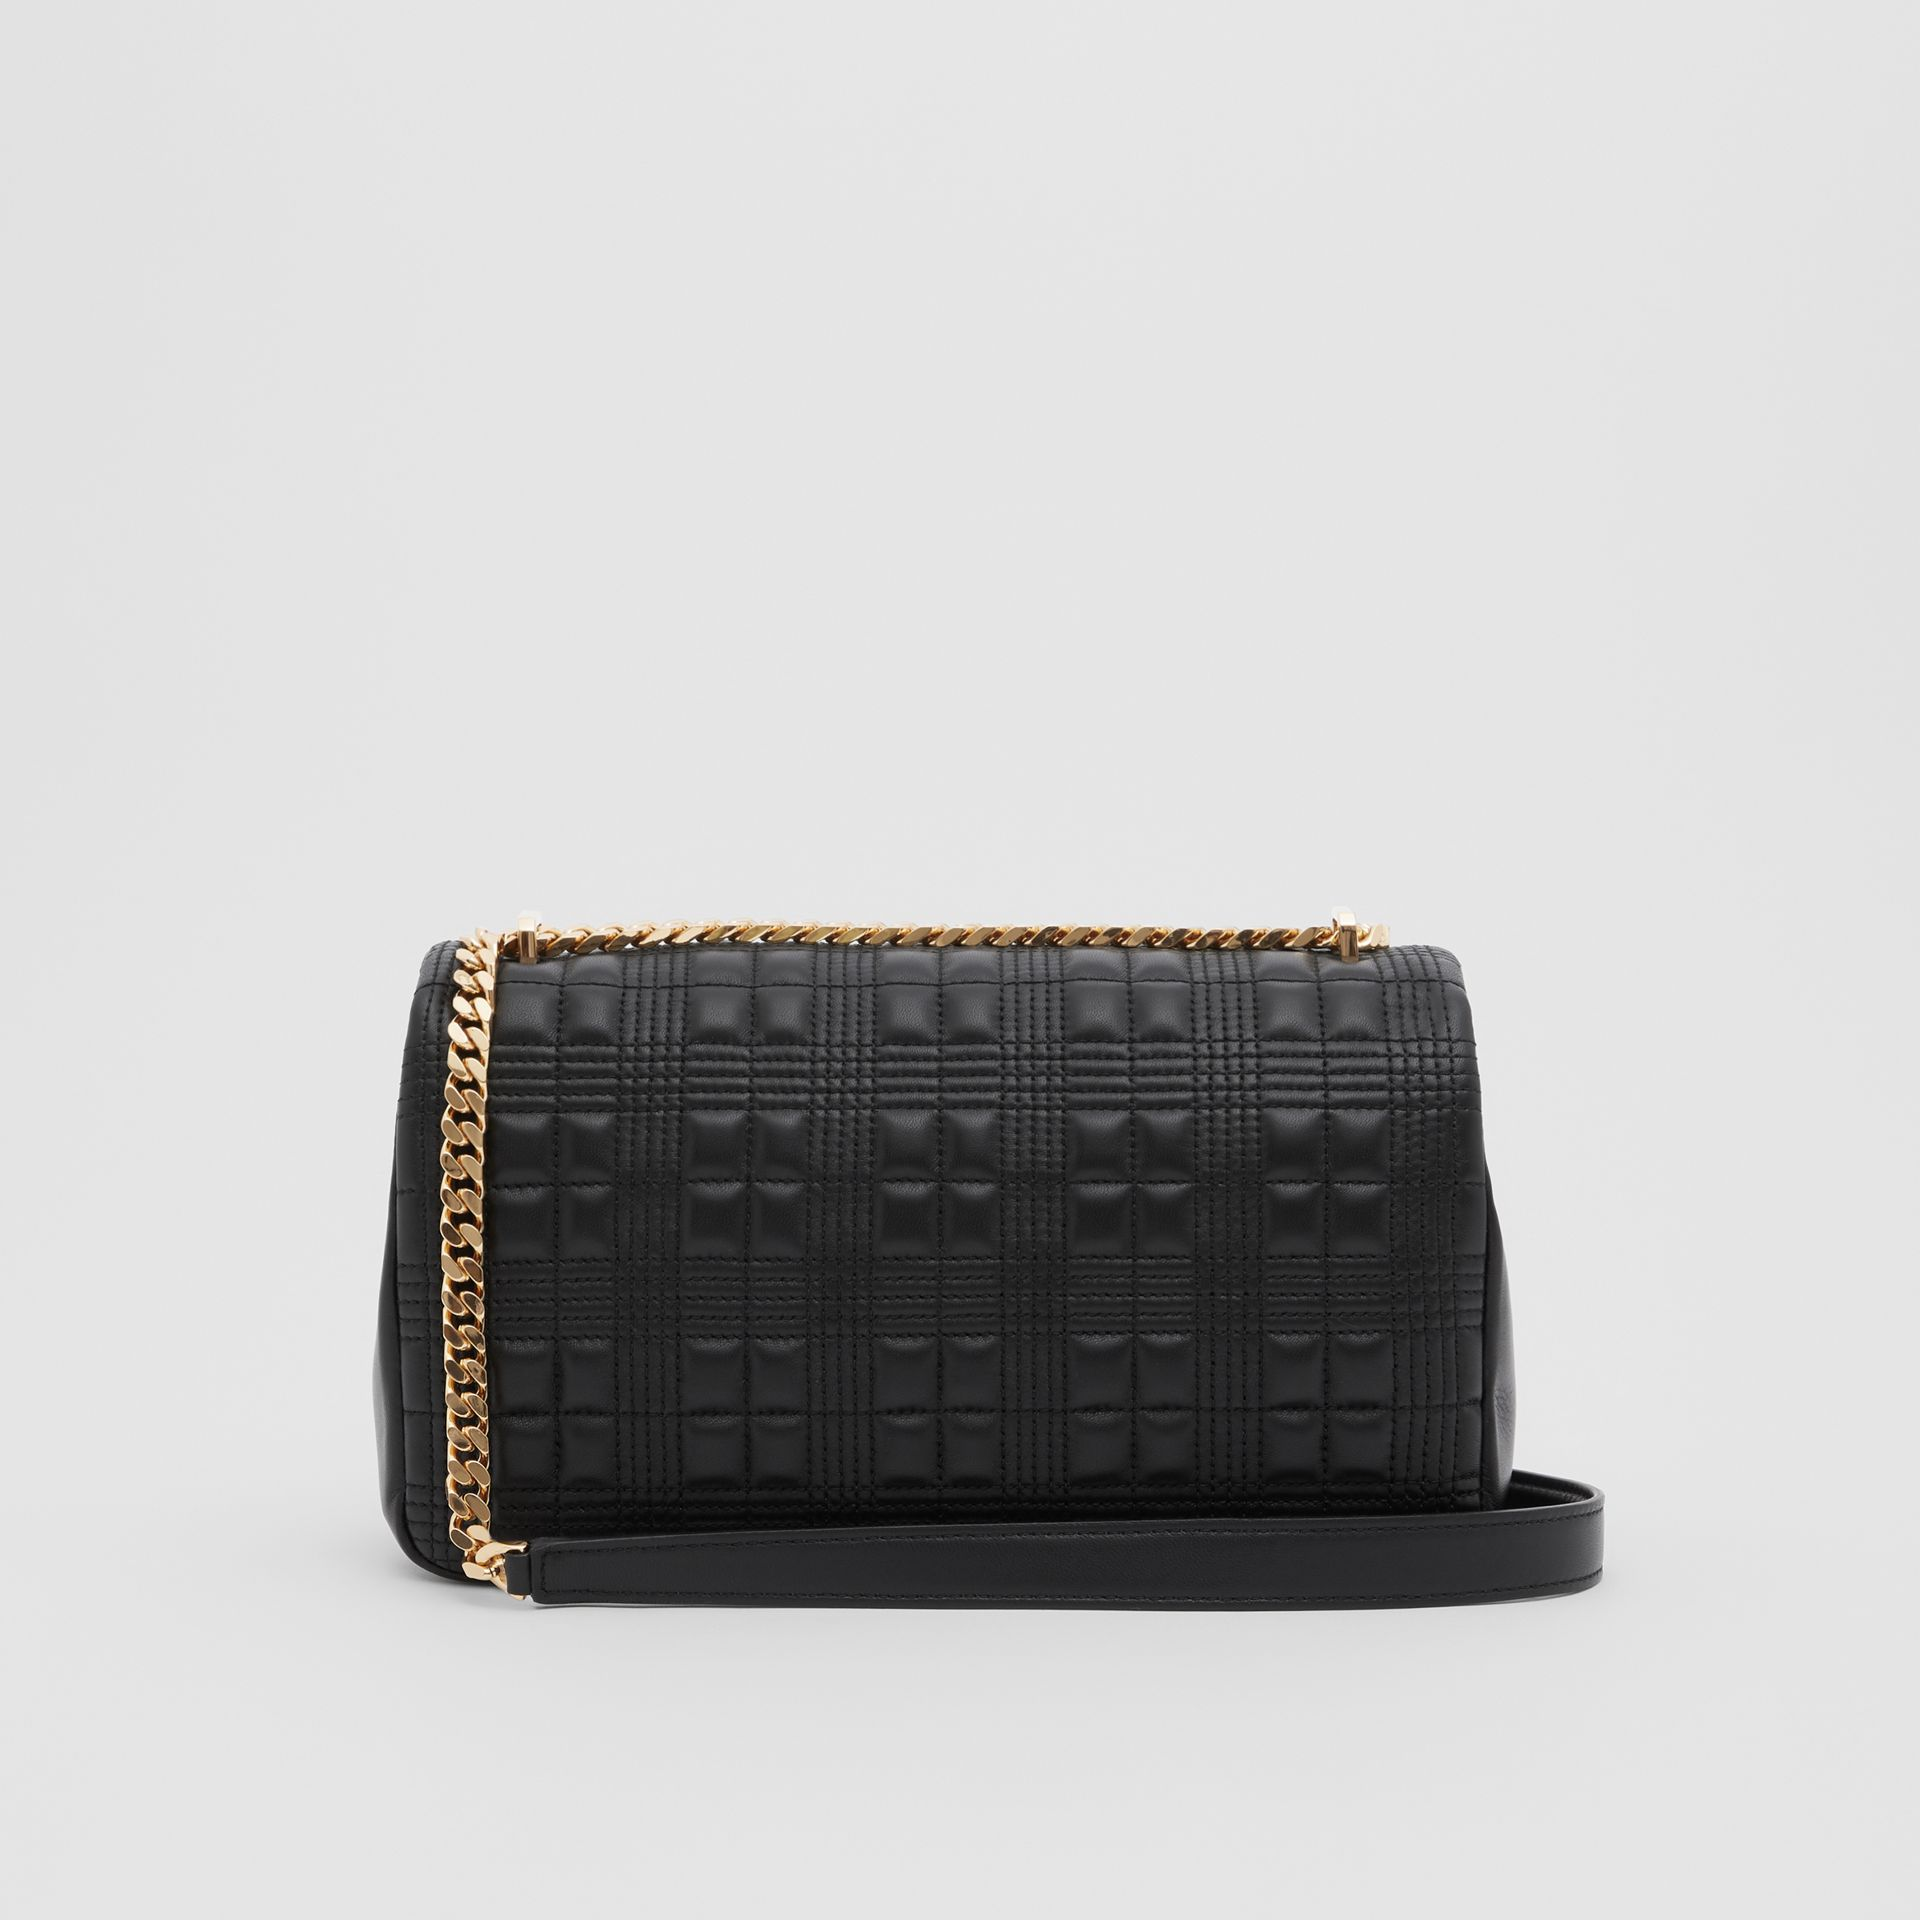 Medium Quilted Lambskin Lola Bag in Black - Women | Burberry - gallery image 5